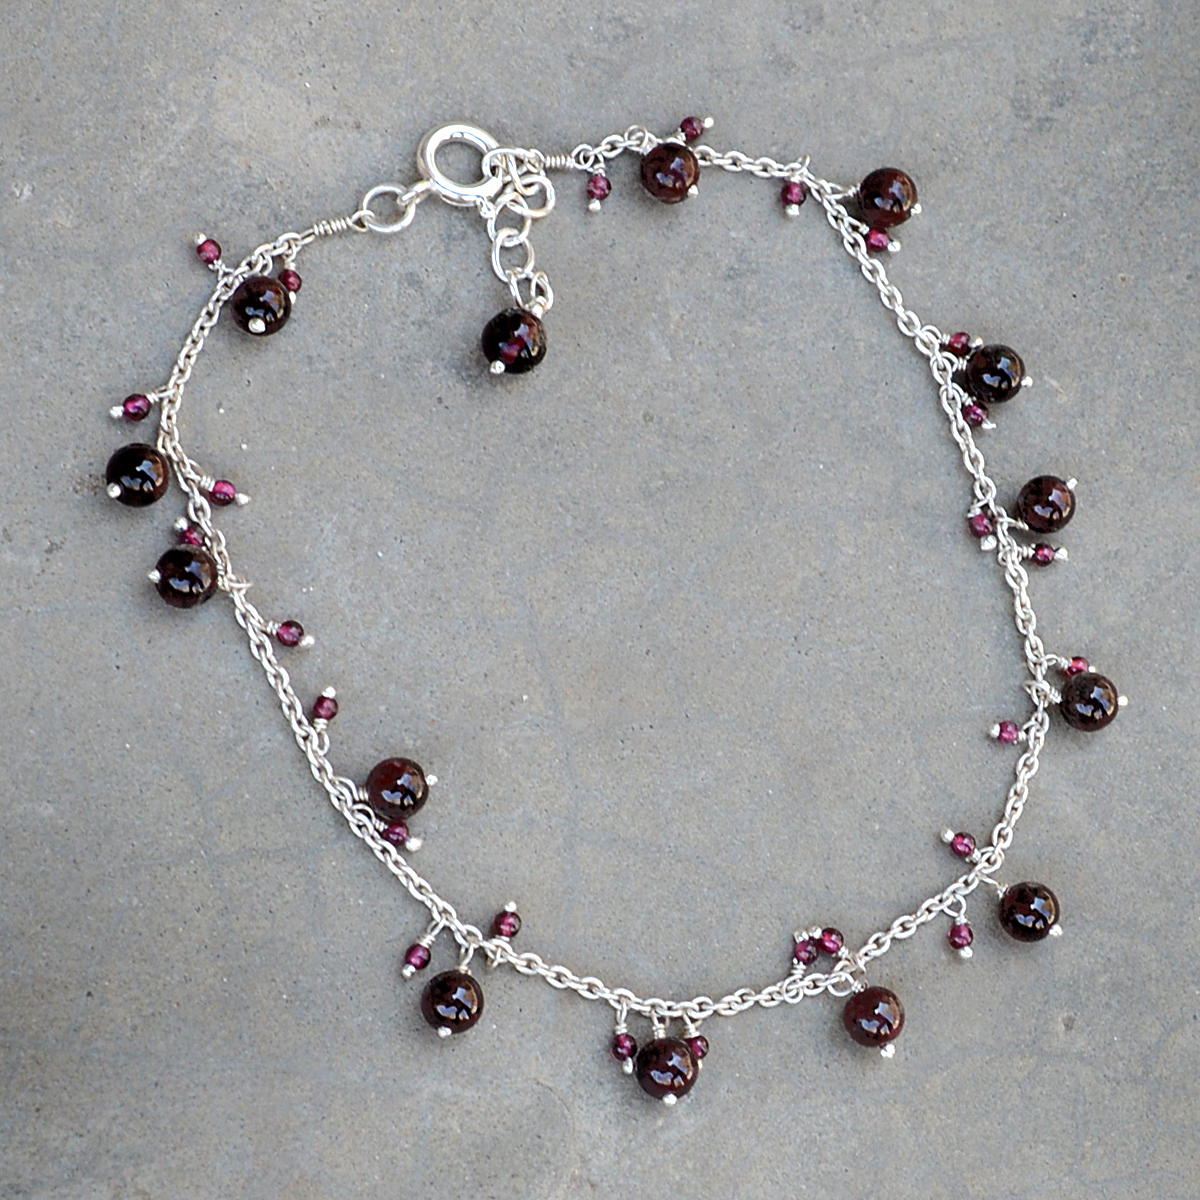 Handmade Jewelry Manufacturer Garnet 925 Sterling Silver Single Anklet Jaipur Rajasthan India